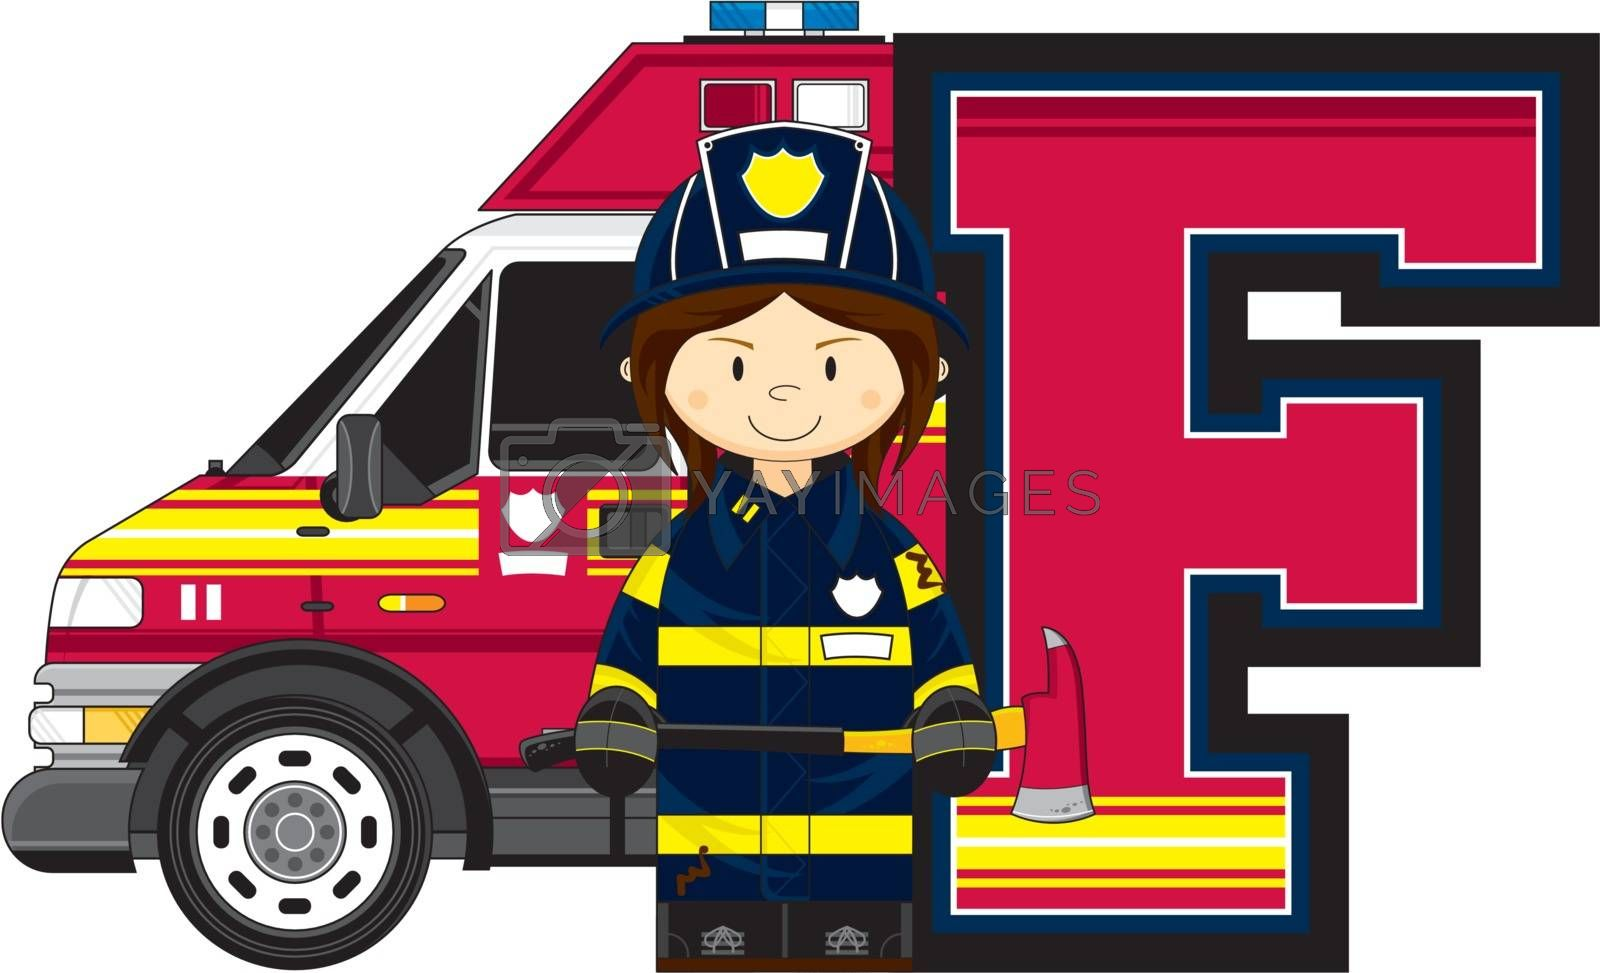 Cute Cartoon F is for Fireman with Fire Engine Alphabet Learning Illustration - by Mark Murphy Creative